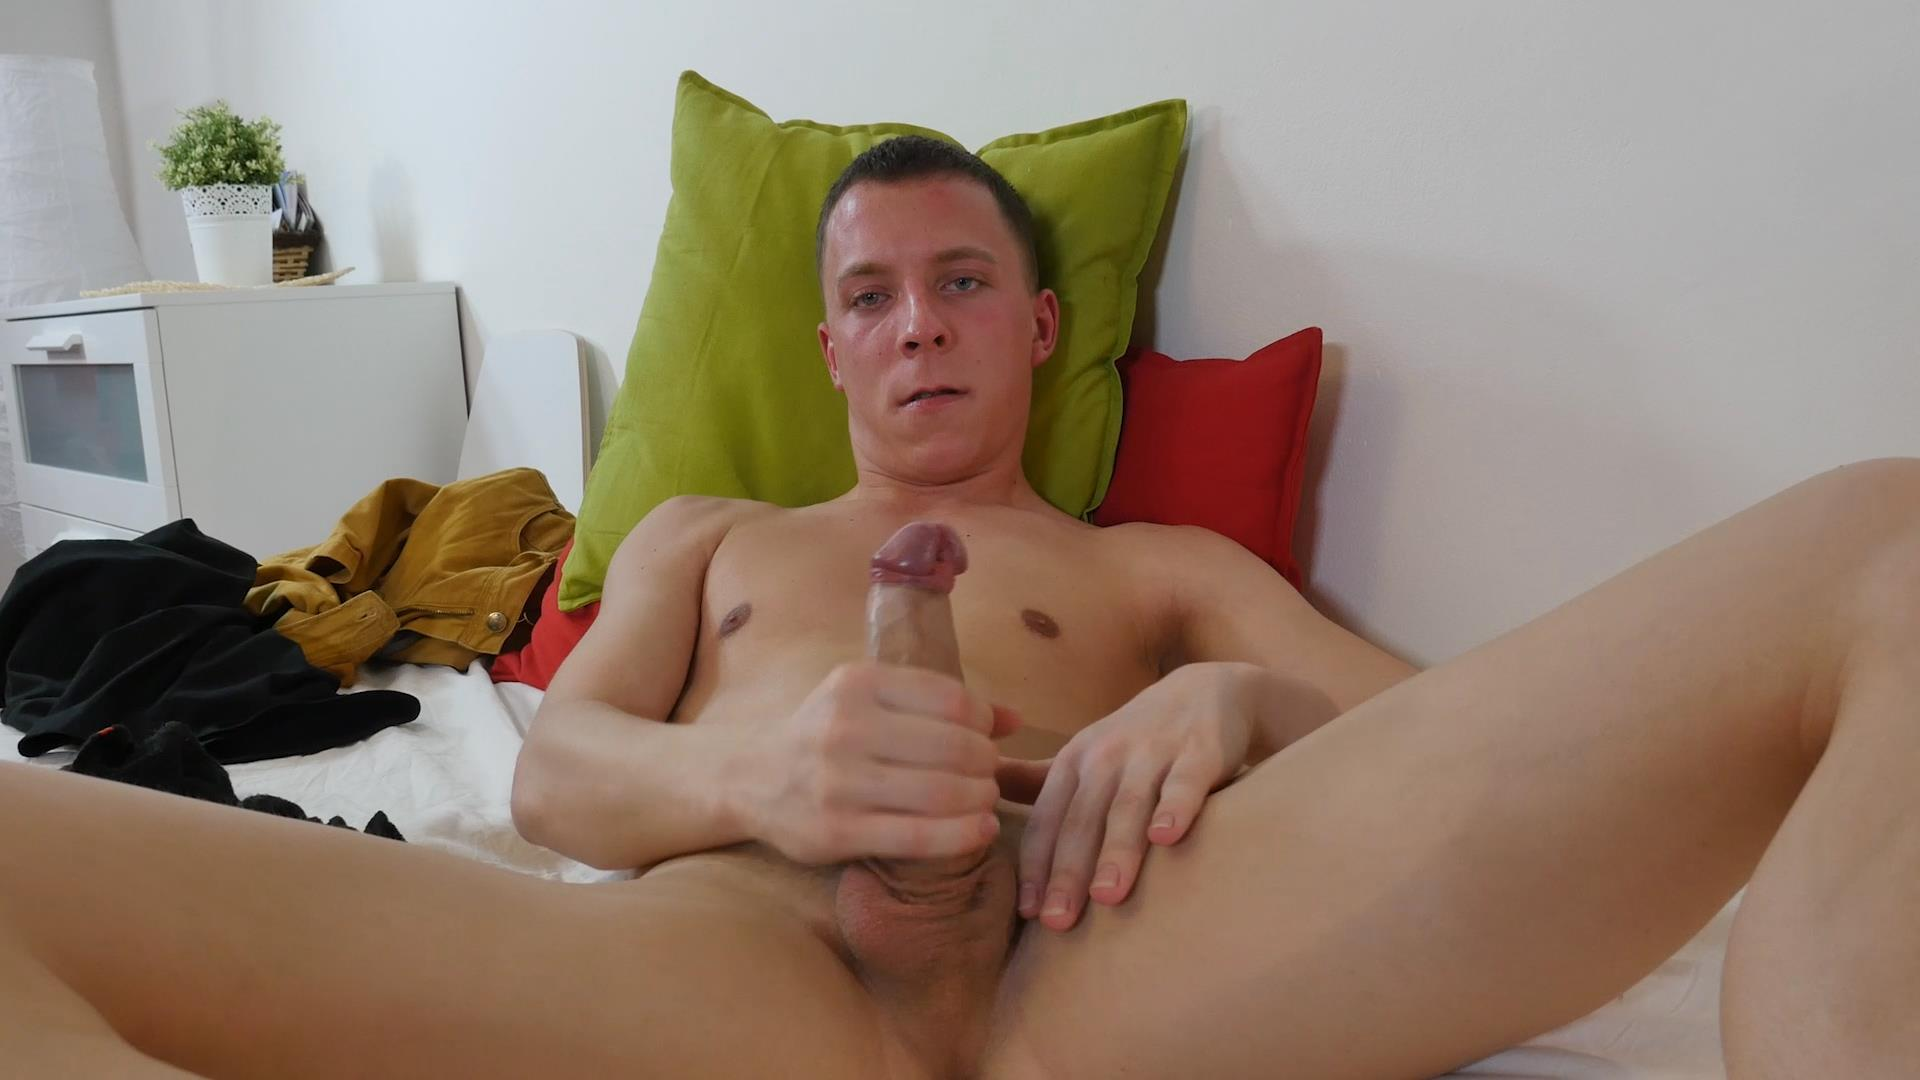 Delbert recommend best of party twink bareback